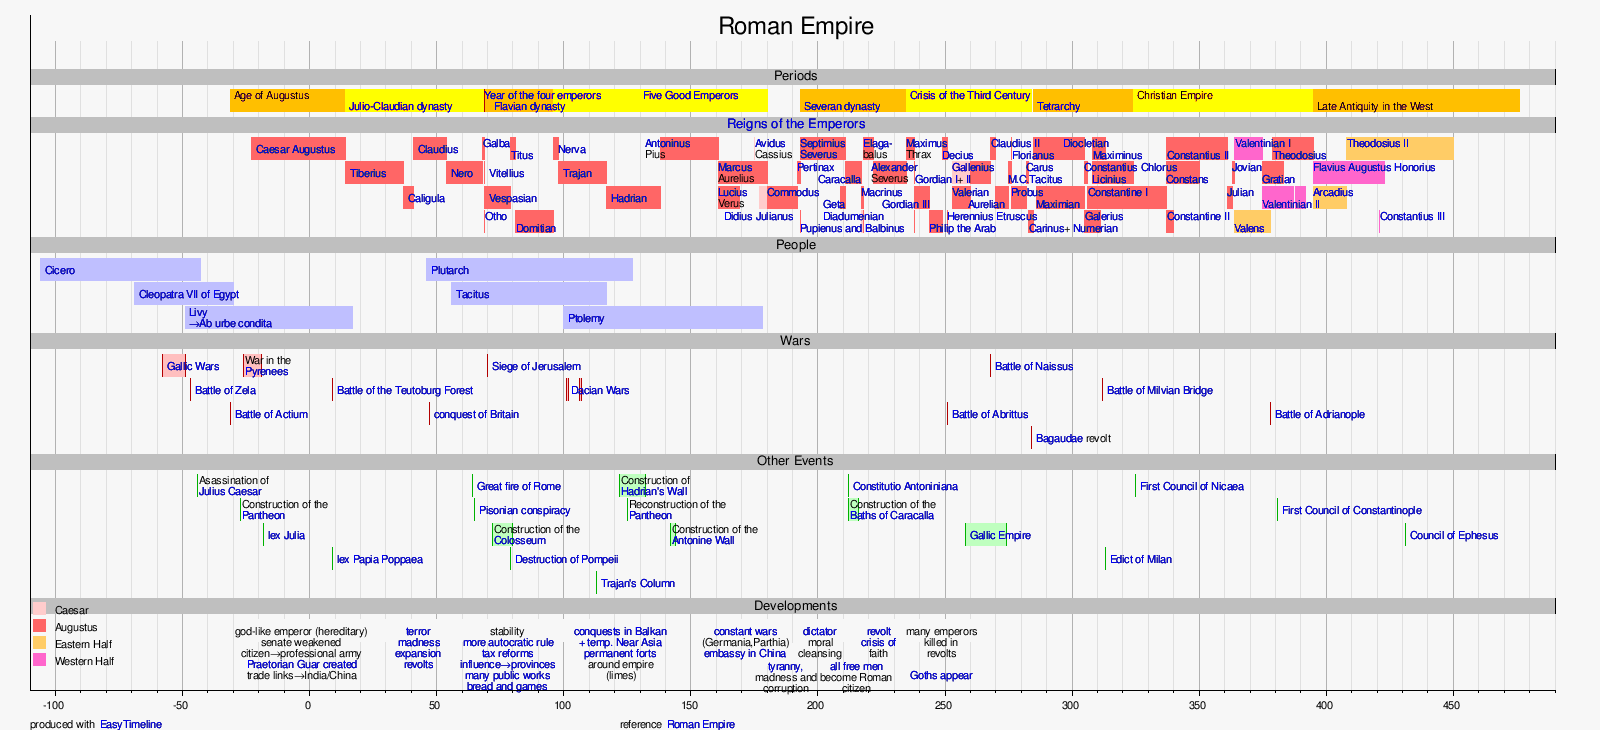 Timeline of Roman Emperors Visit the Romans site for a comprehensive Timeline of all Roman Emperors including the pretenders and usurpers Dates names and facts in